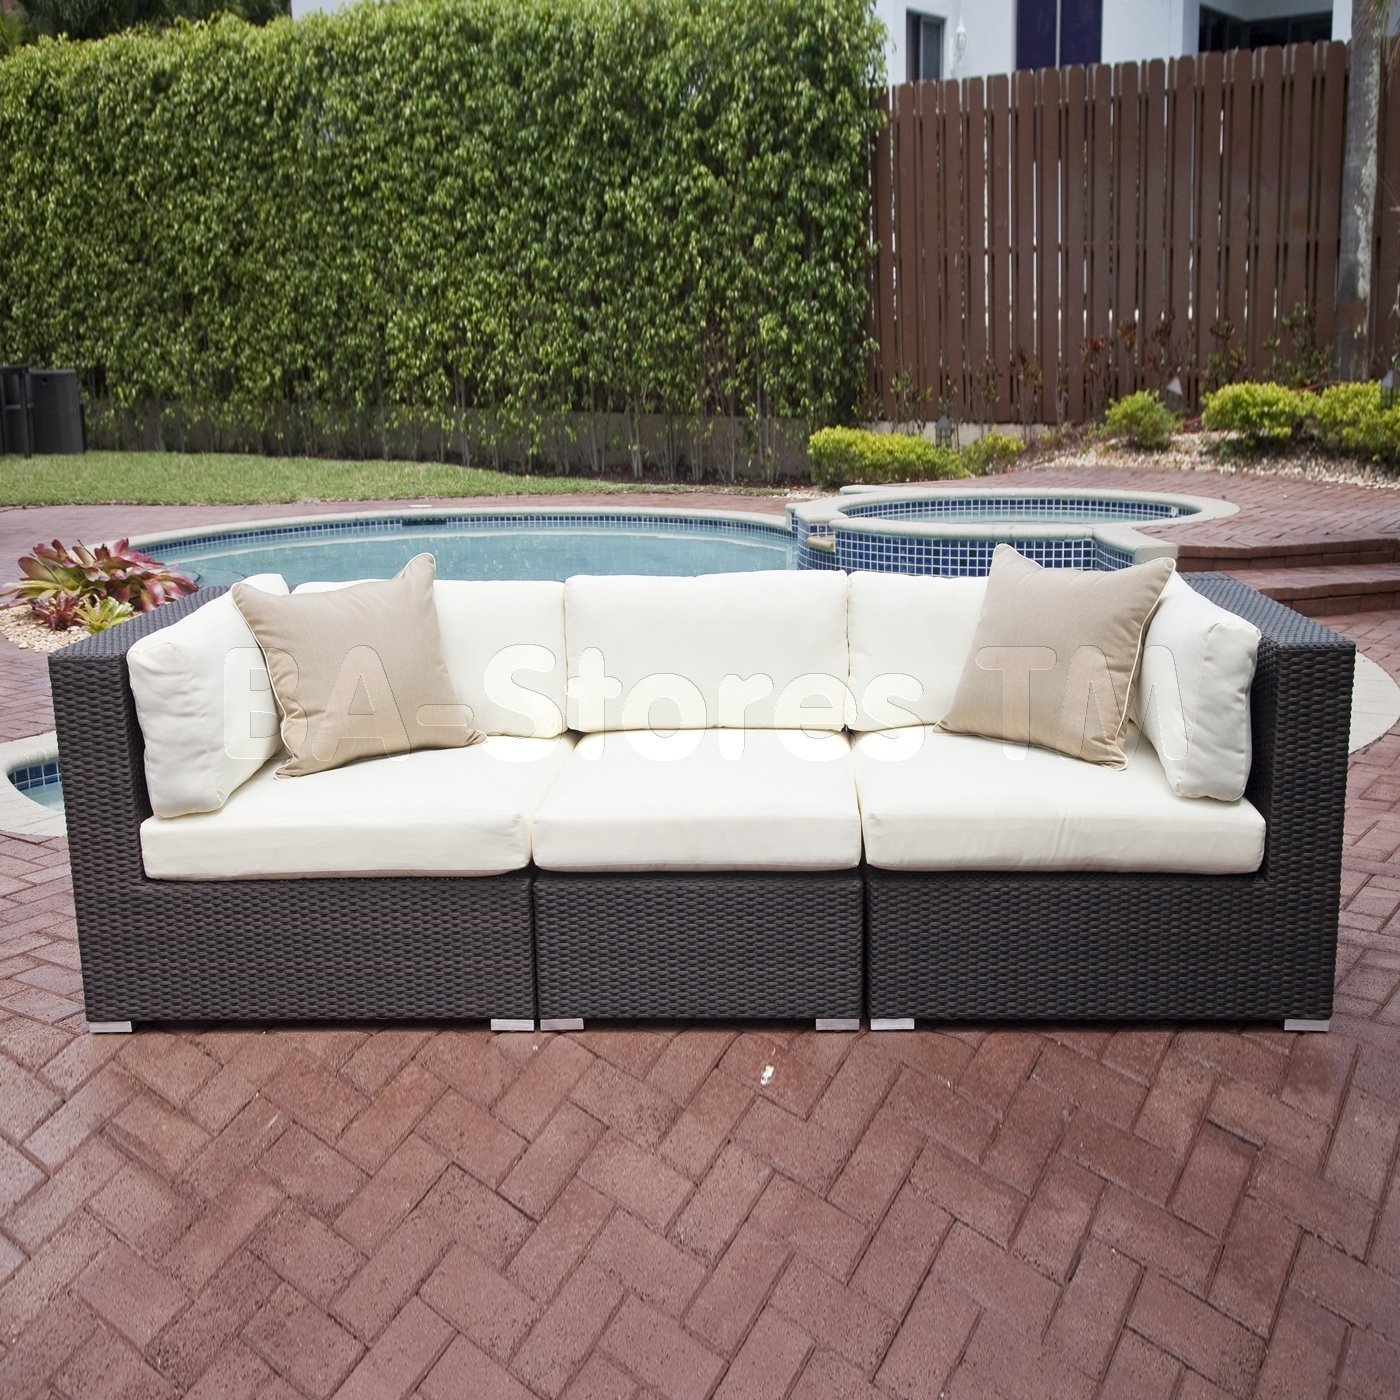 Use Sectional Sofa As A Patio Couch  A Great Extension Of Your Living Space